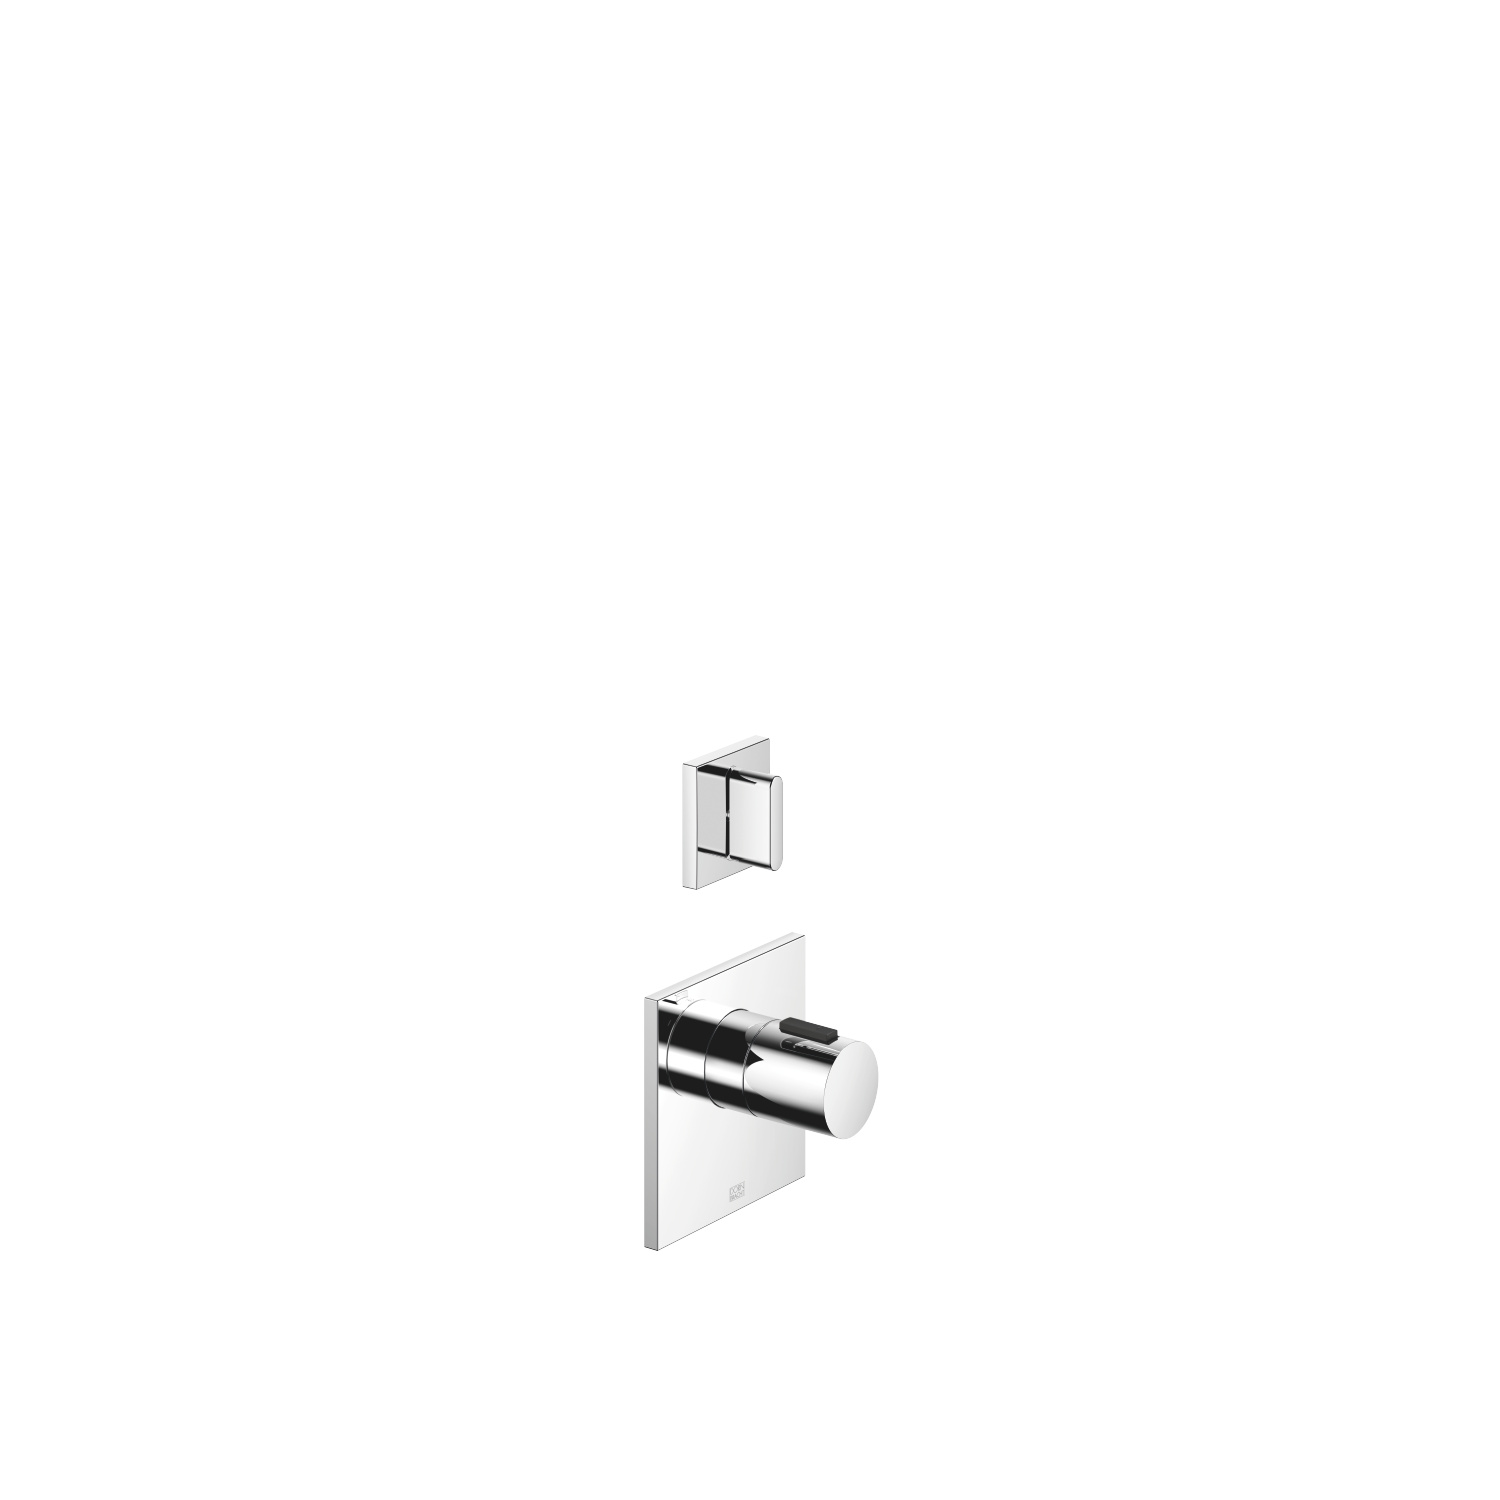 xTOOL Thermostat module with 1 valve - polished chrome